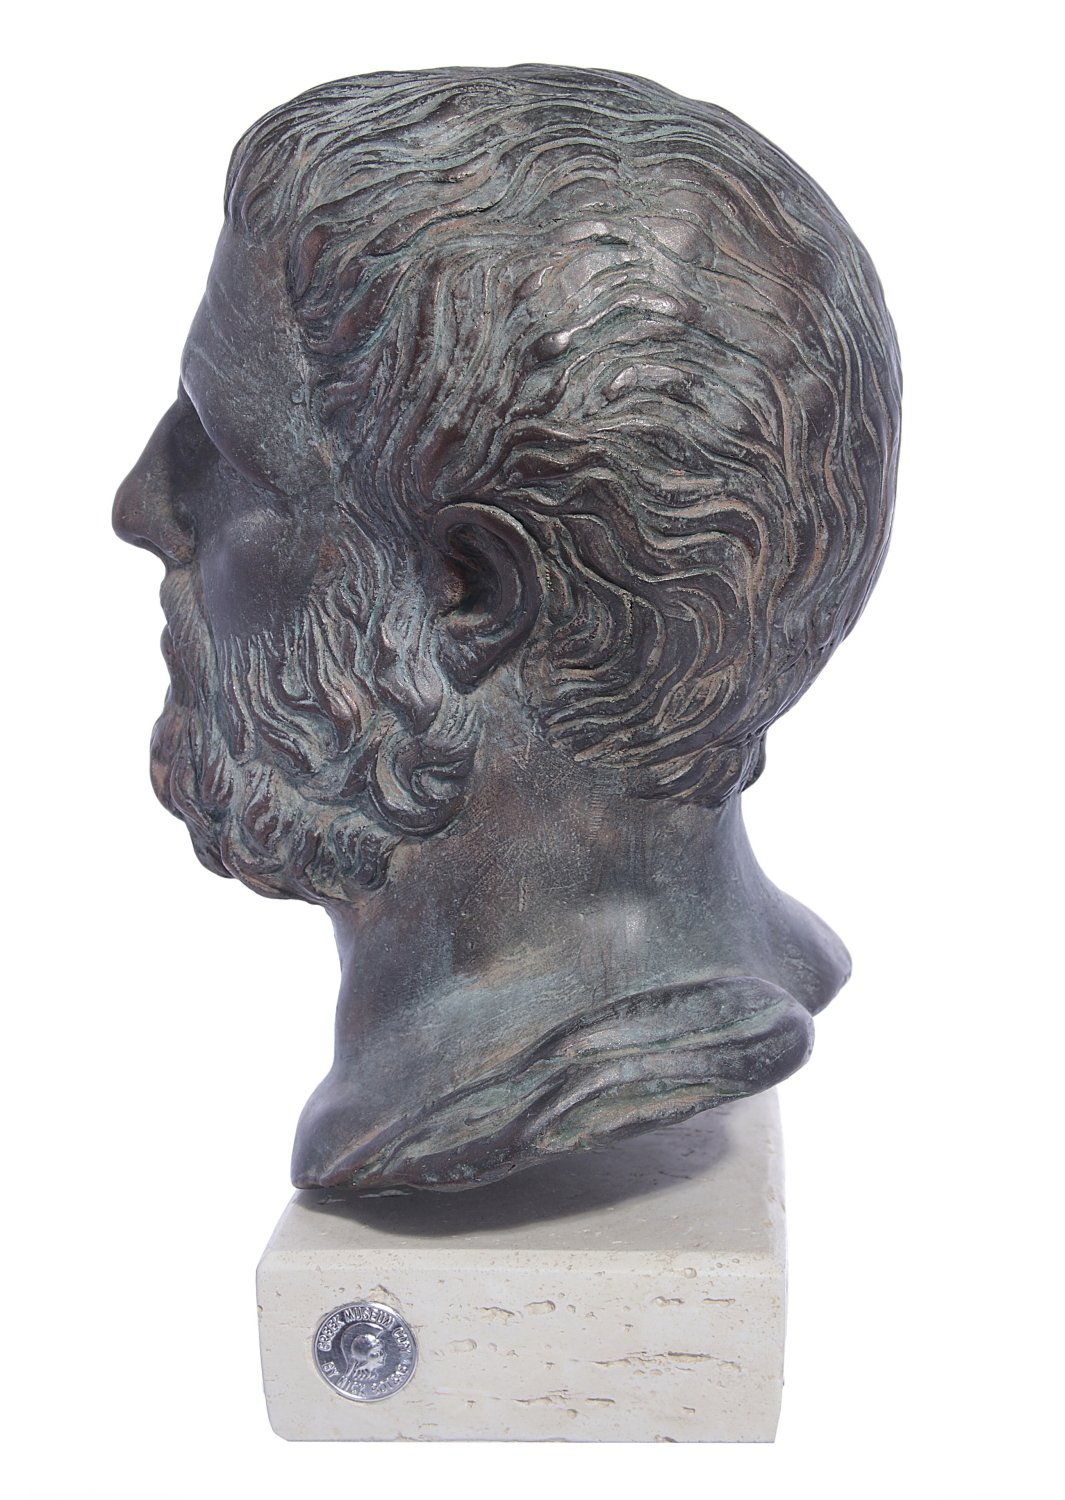 Hippocrates (Ippokrates) green greek plaster bust statue